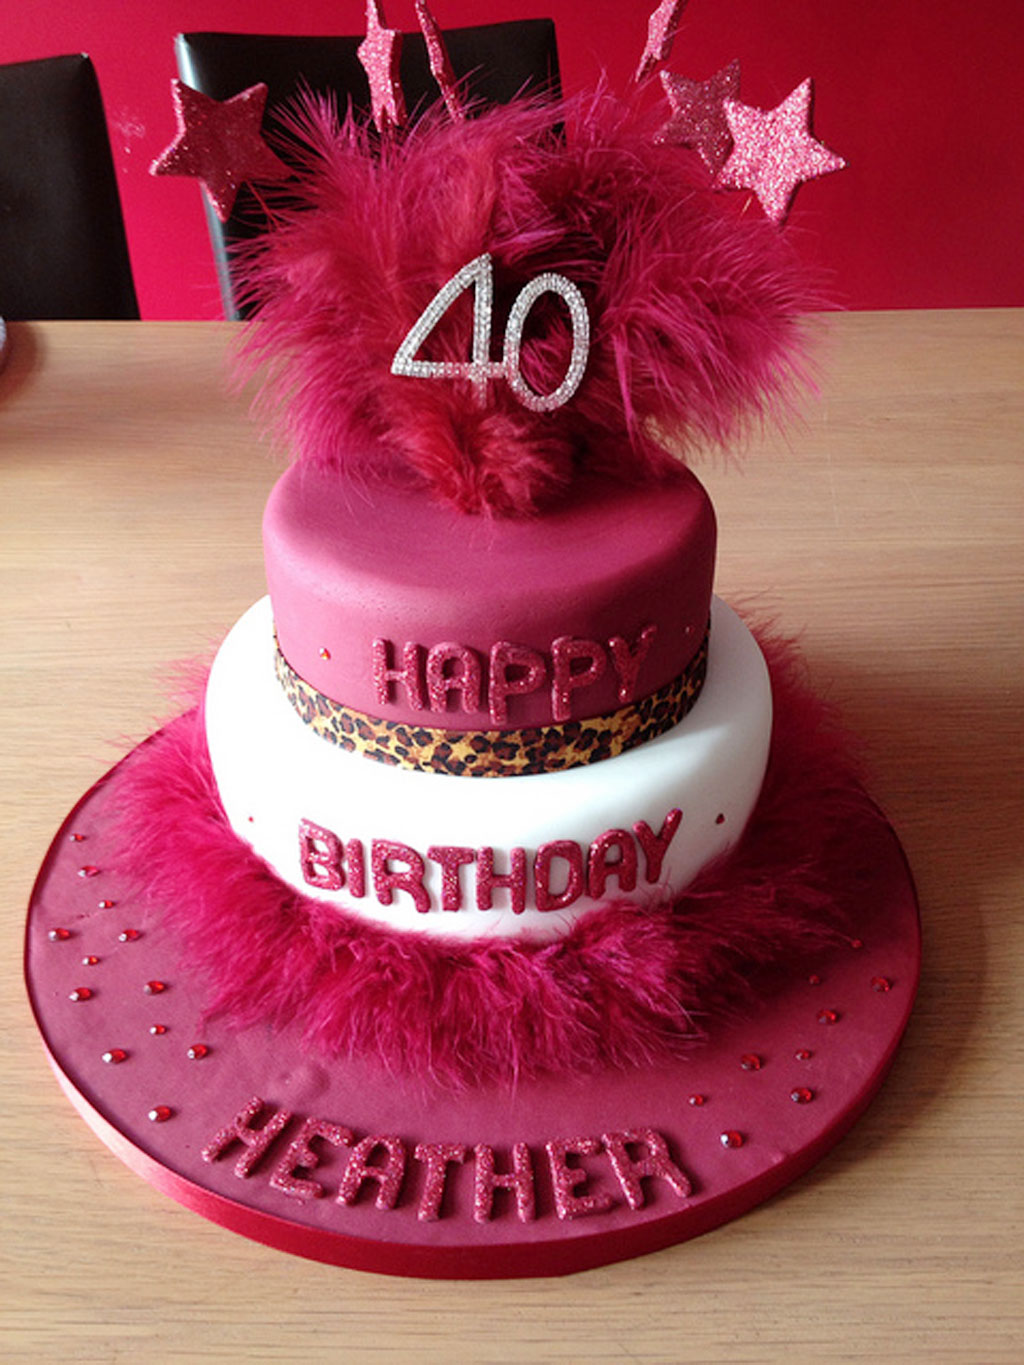 40th birthday decorations birthday cake cake ideas by for 40th birthday decoration